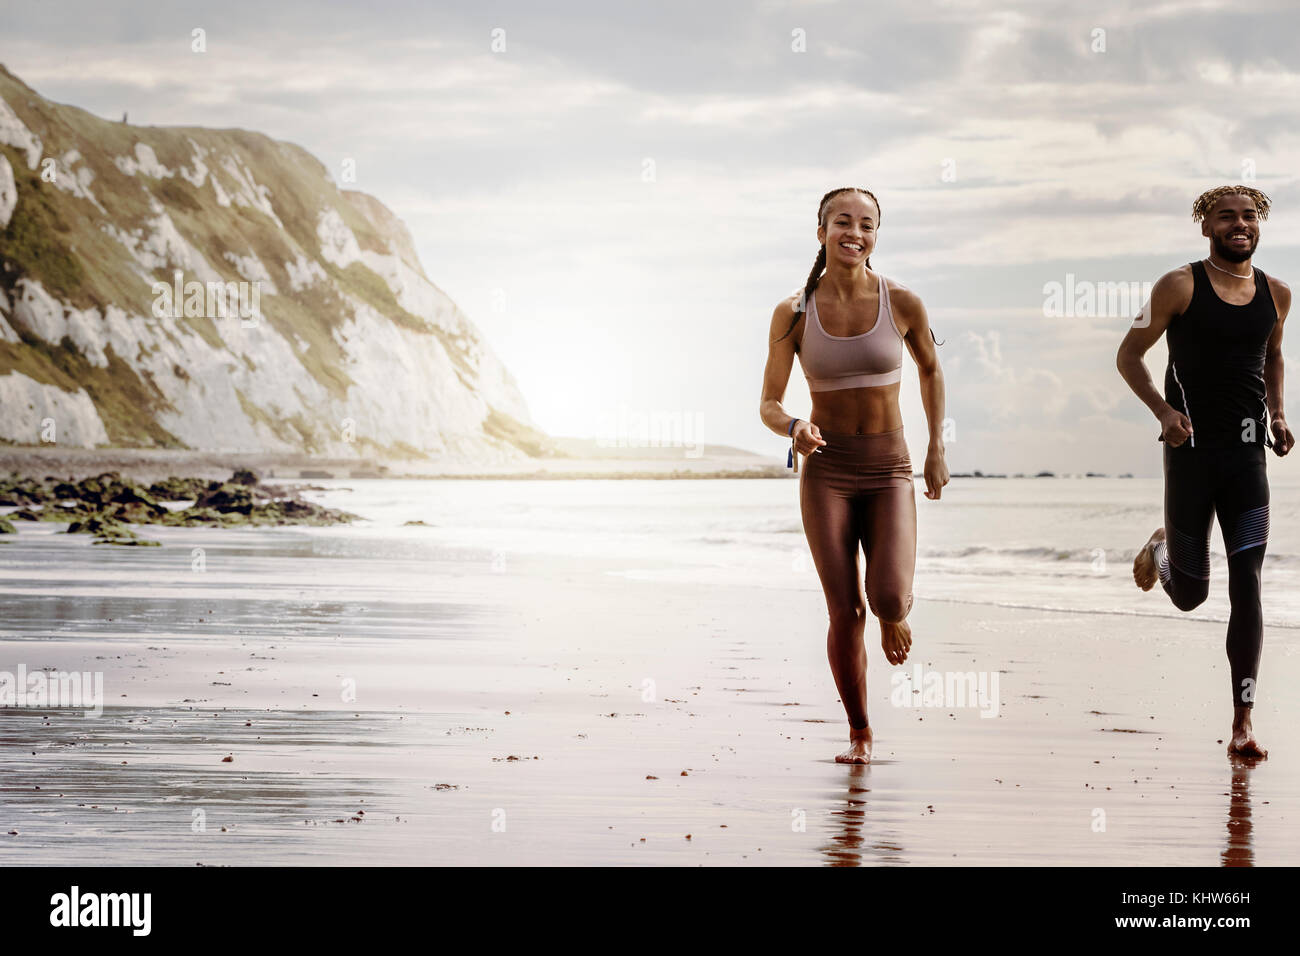 Young male and female runners running barefoot on beach - Stock Image